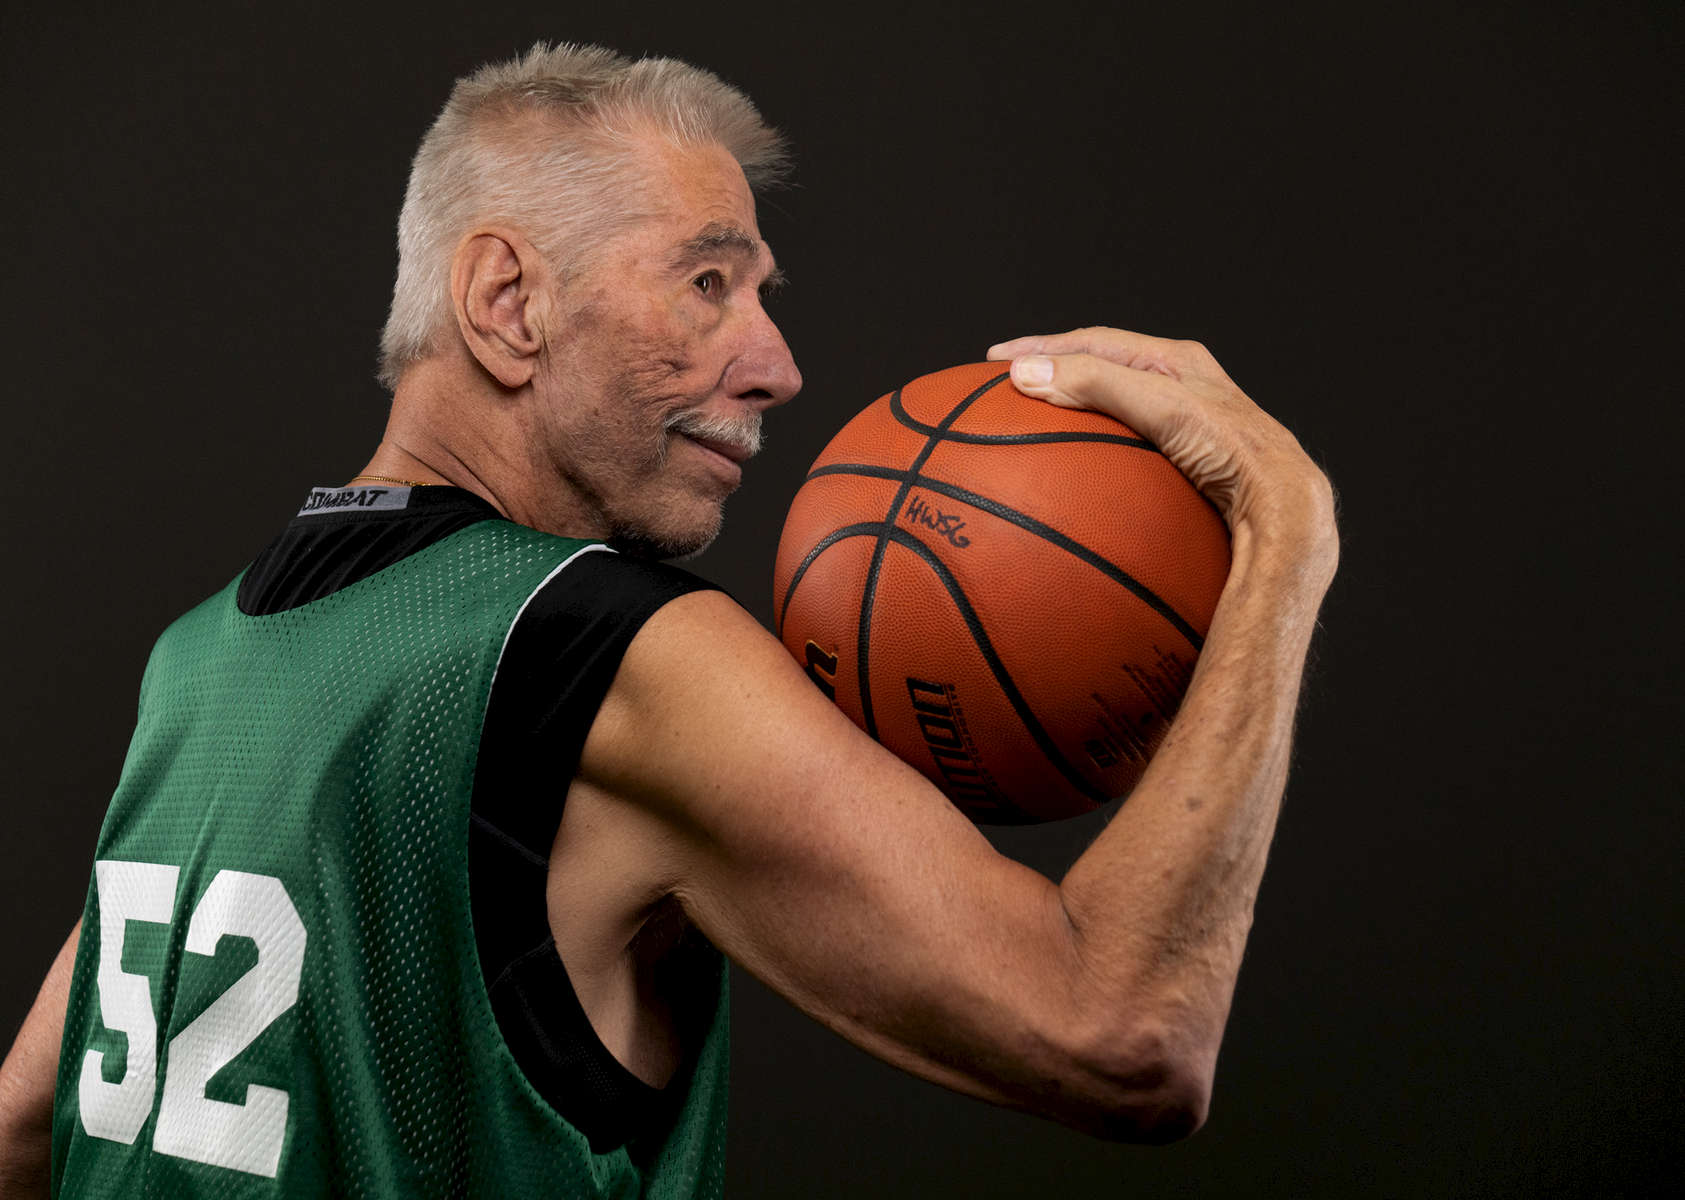 Senior basketball player Ron Flinn aged seventy eight, poses for a portrait during the Huntsman World Senior Games on October 11, 2019 in St. George, Utah.  Ron has been battling throat cancer yet continues to stay active and compete on the basketball court.